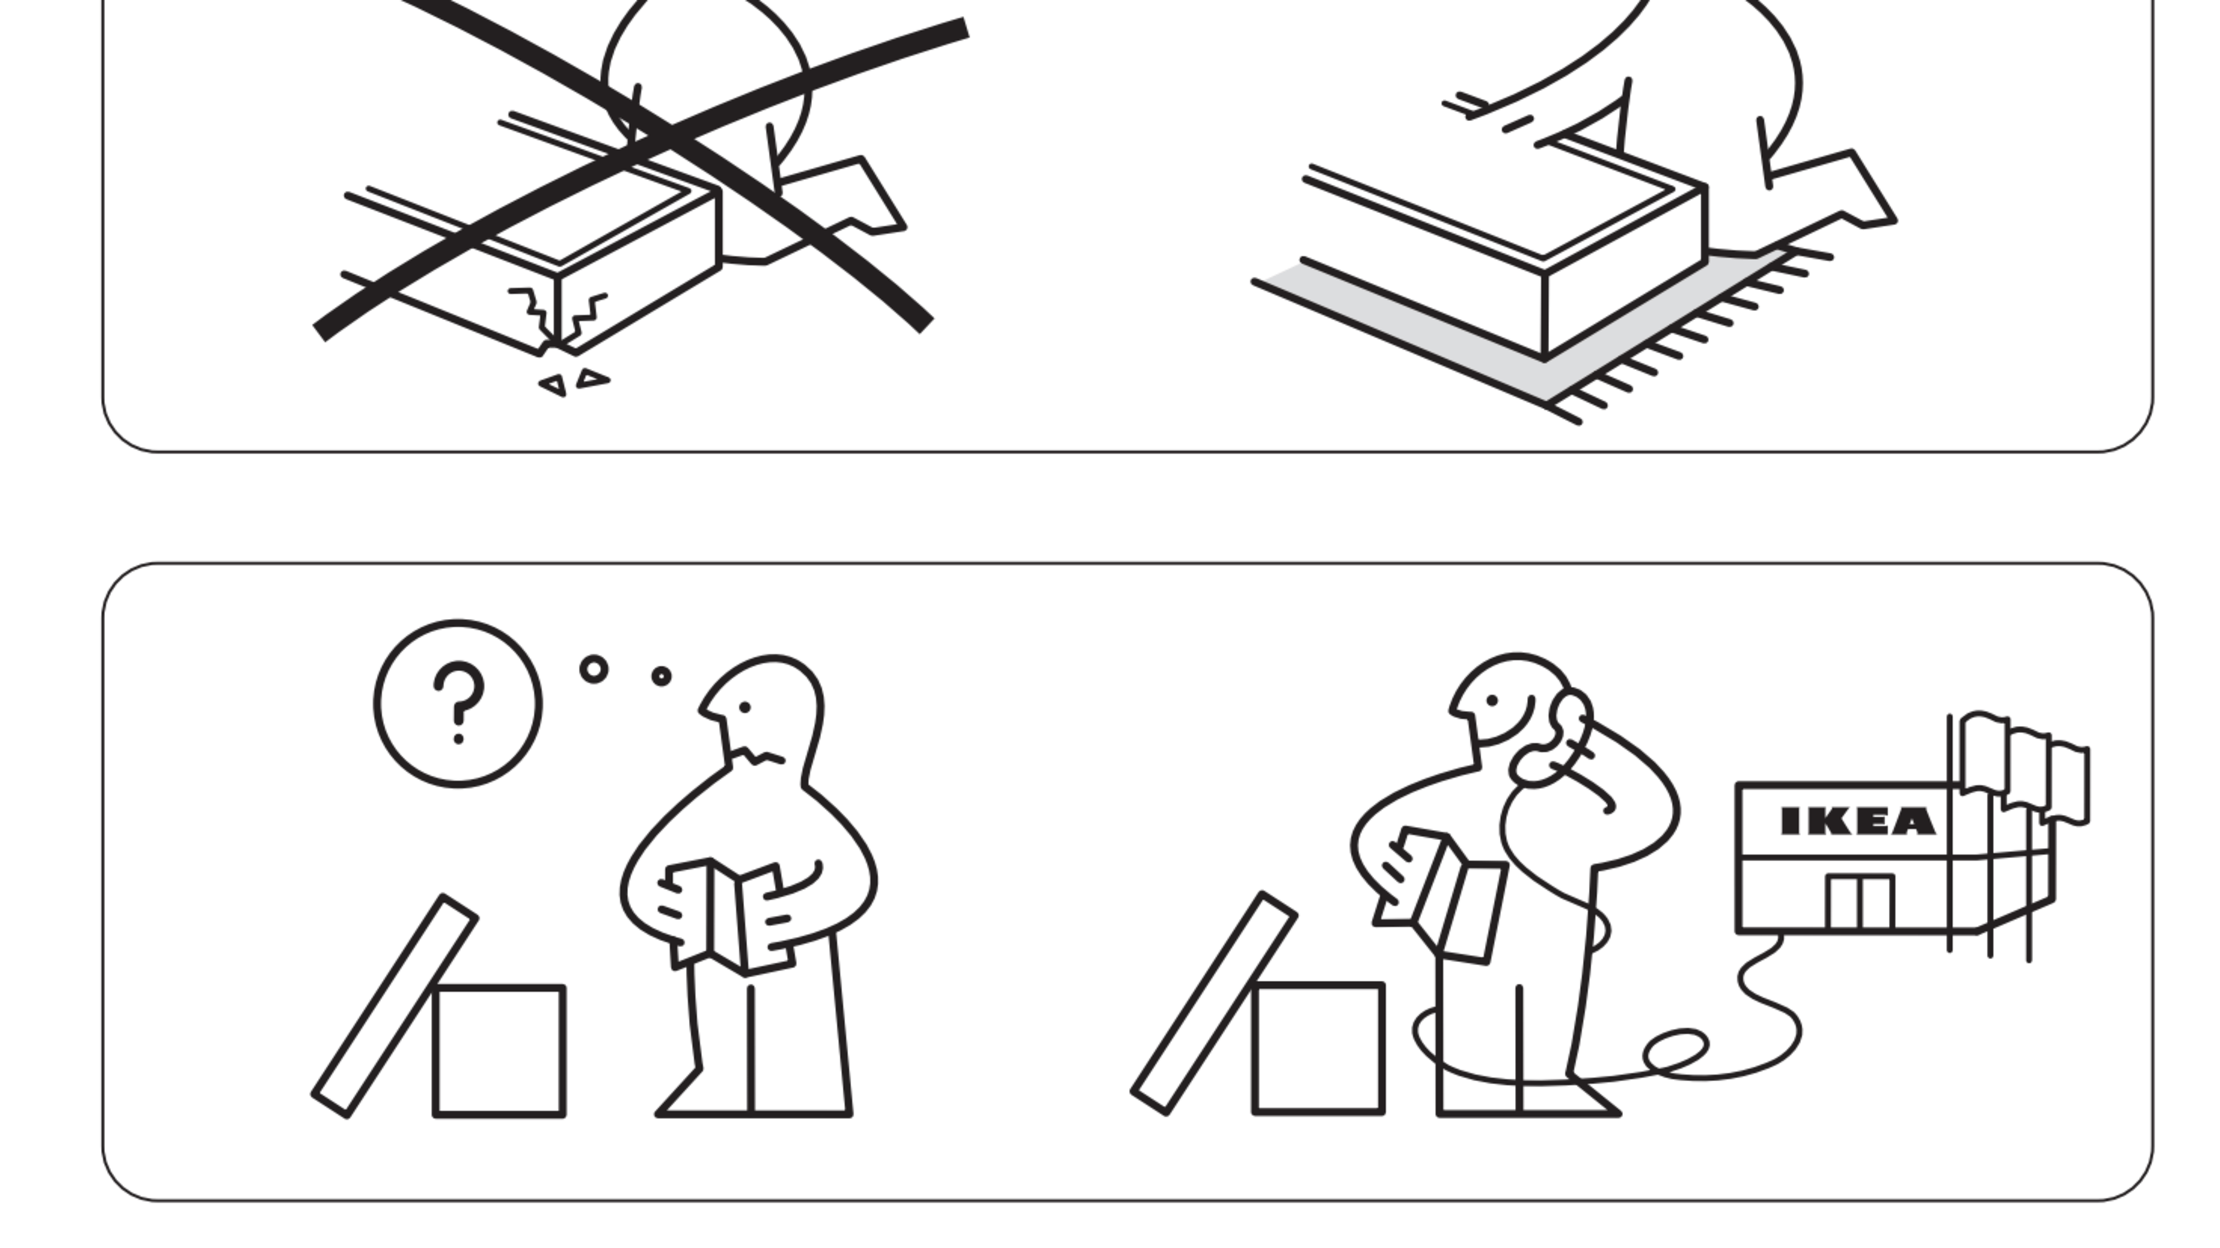 16 Out Of Context Ikea Instructions To Help You Live A